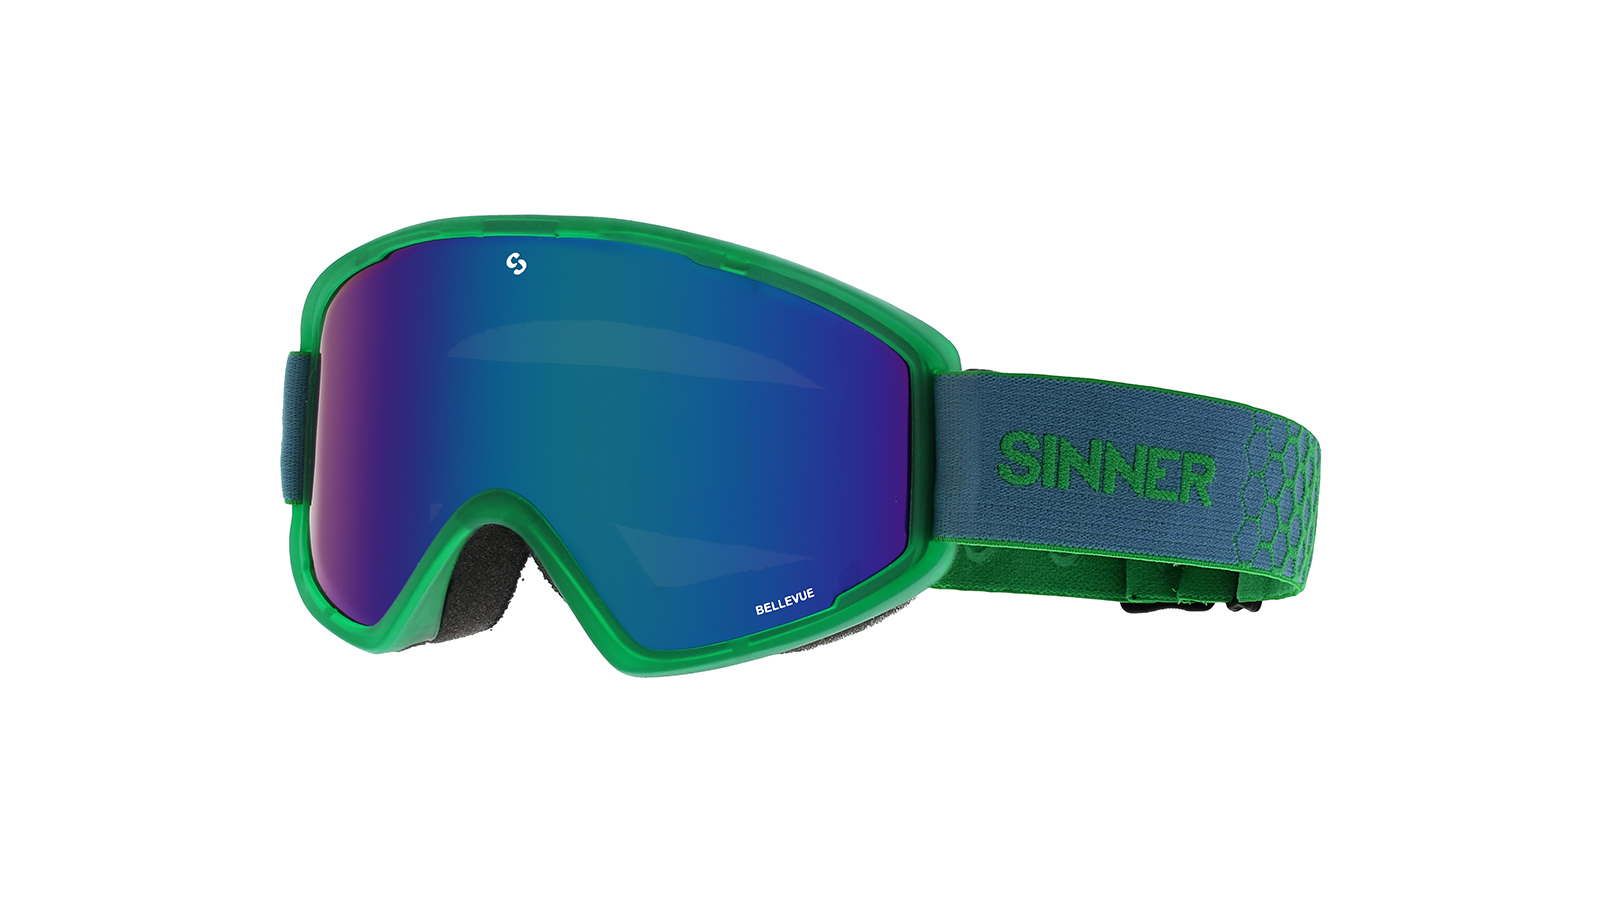 159444f70c6 Sinner Goggles FW18 19 Preview - Boardsport SOURCE